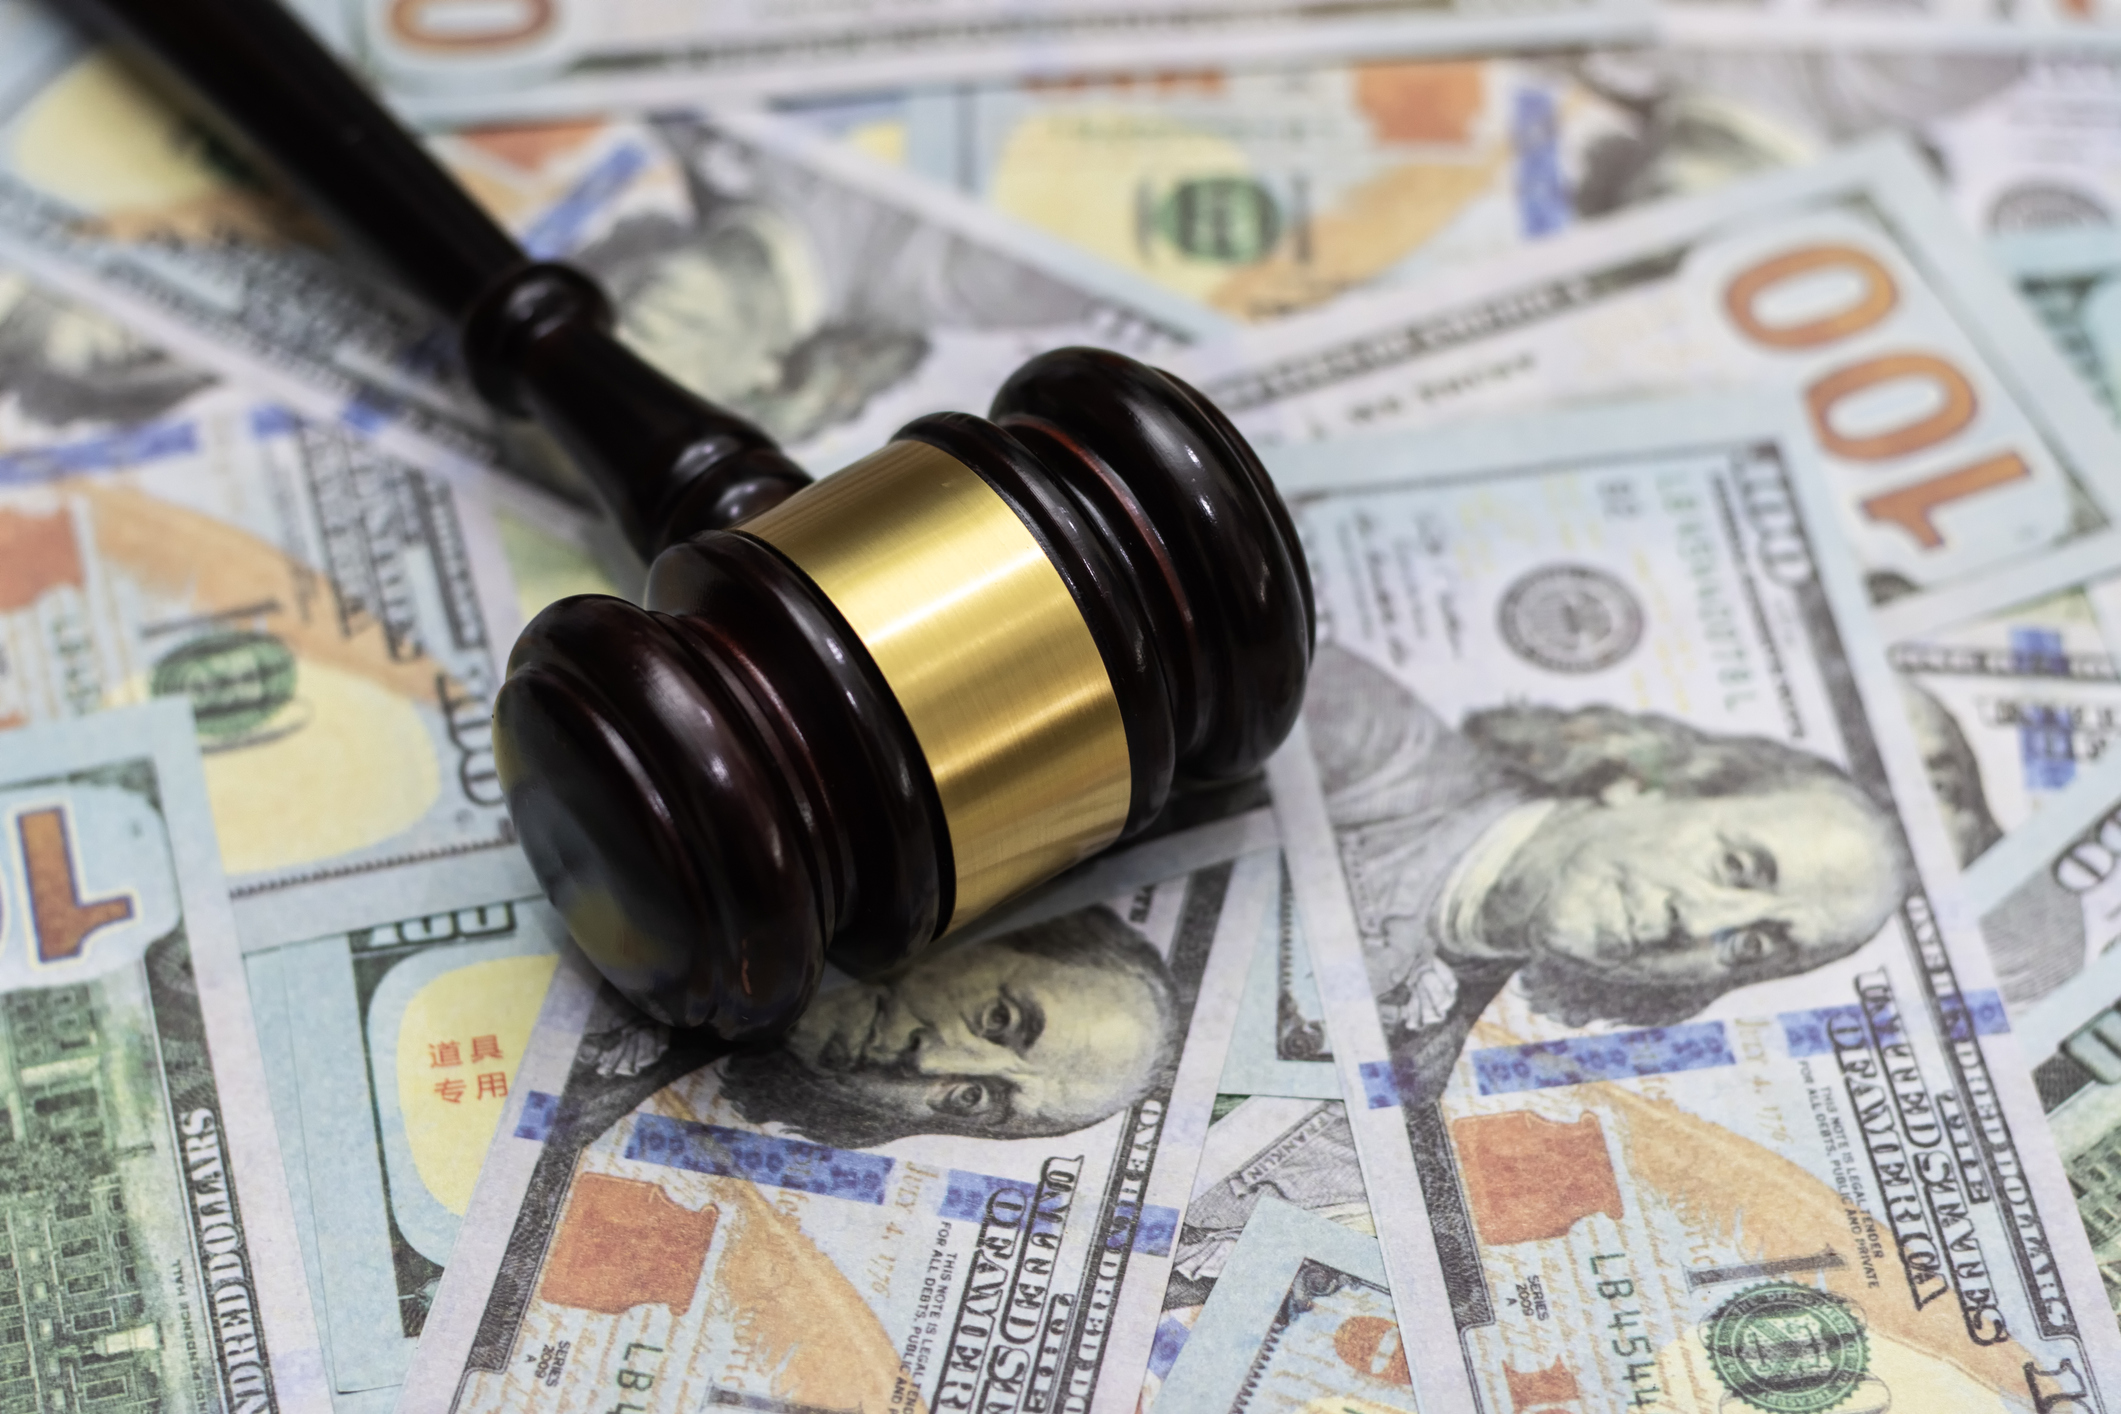 Wooden gavel and dollar banknotes are seen in this file image. (Getty Images)